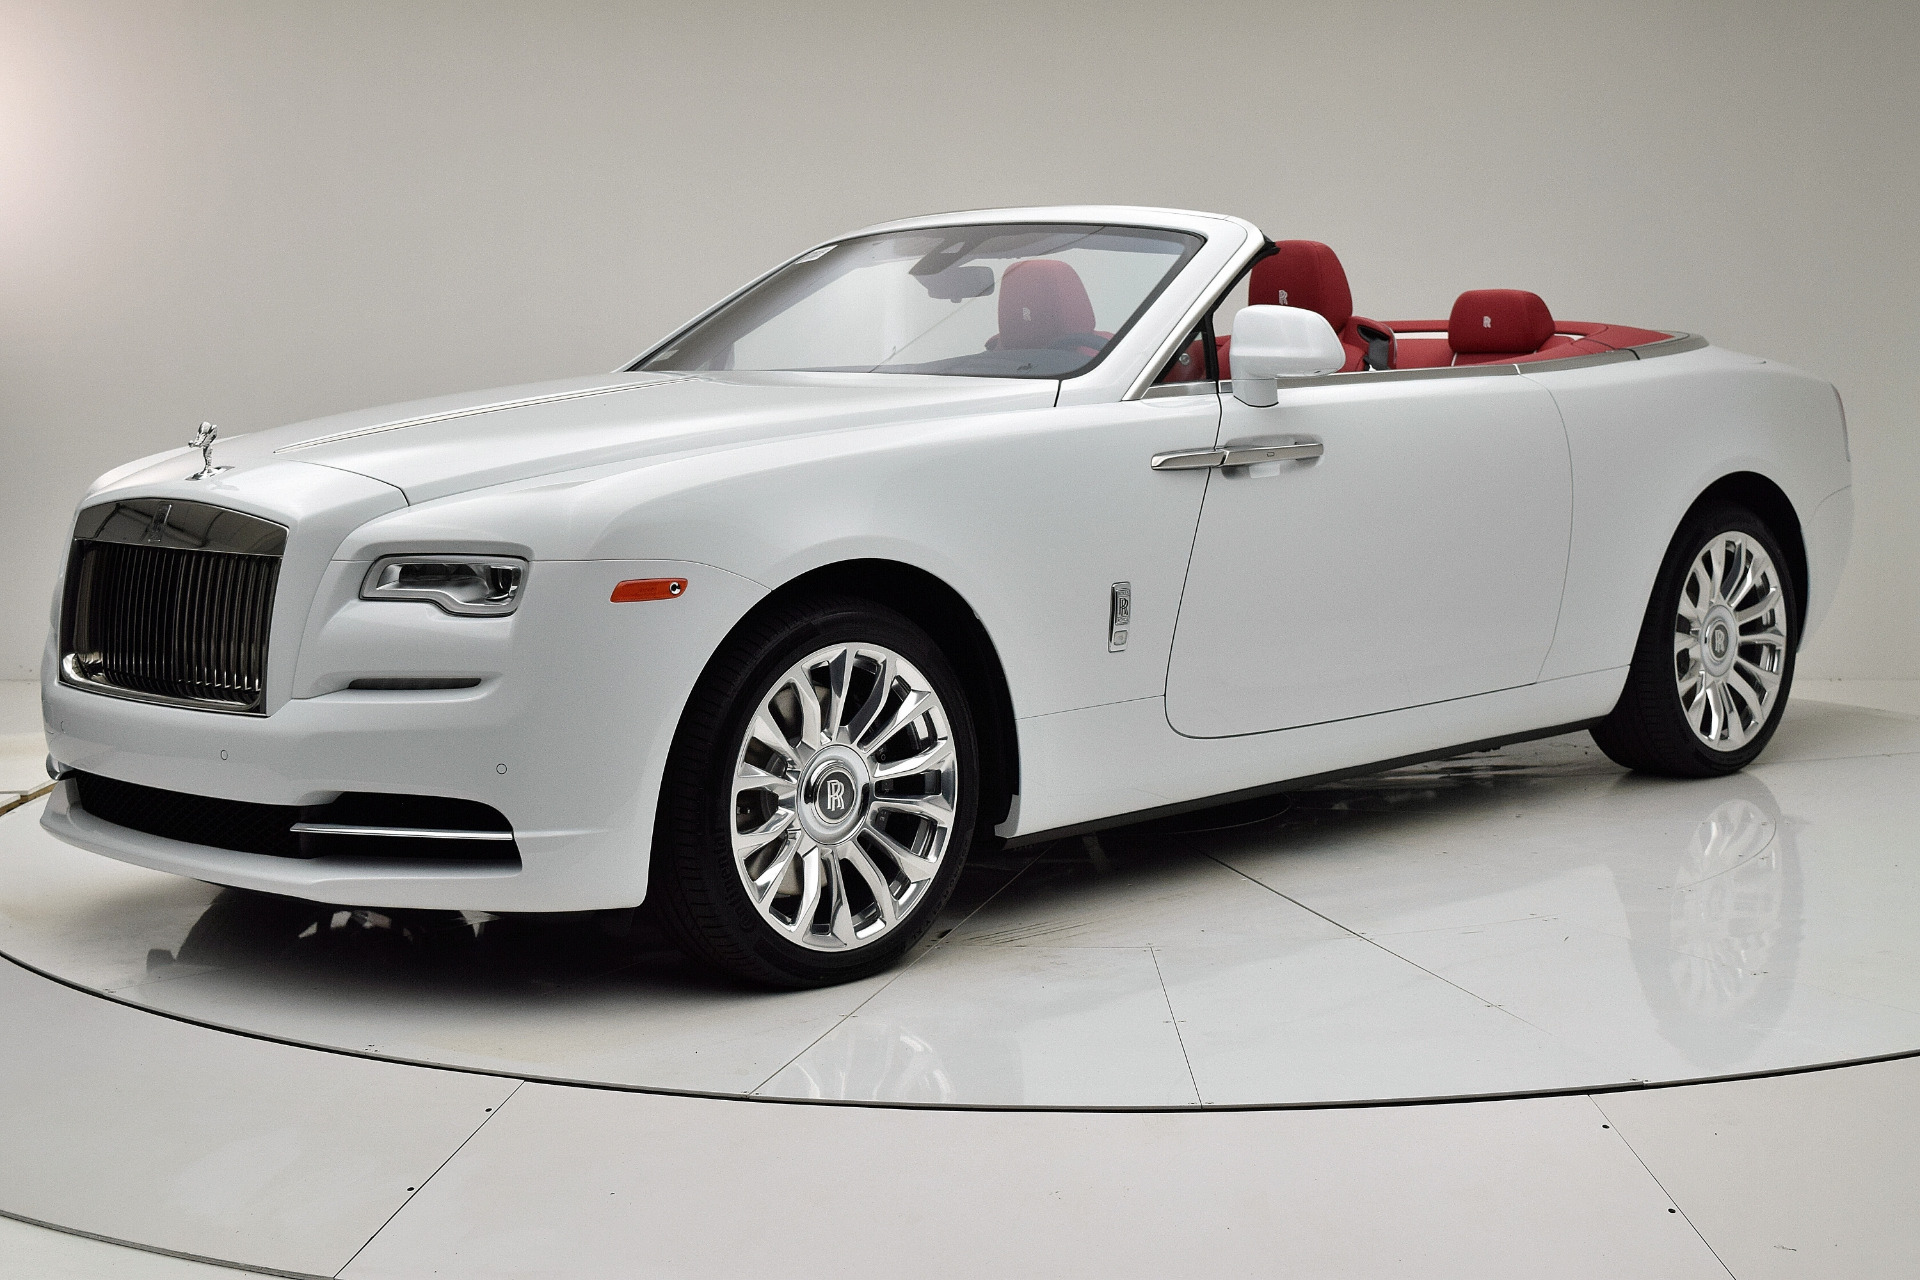 New 2020 Rolls-Royce Dawn for sale Sold at F.C. Kerbeck Aston Martin in Palmyra NJ 08065 2